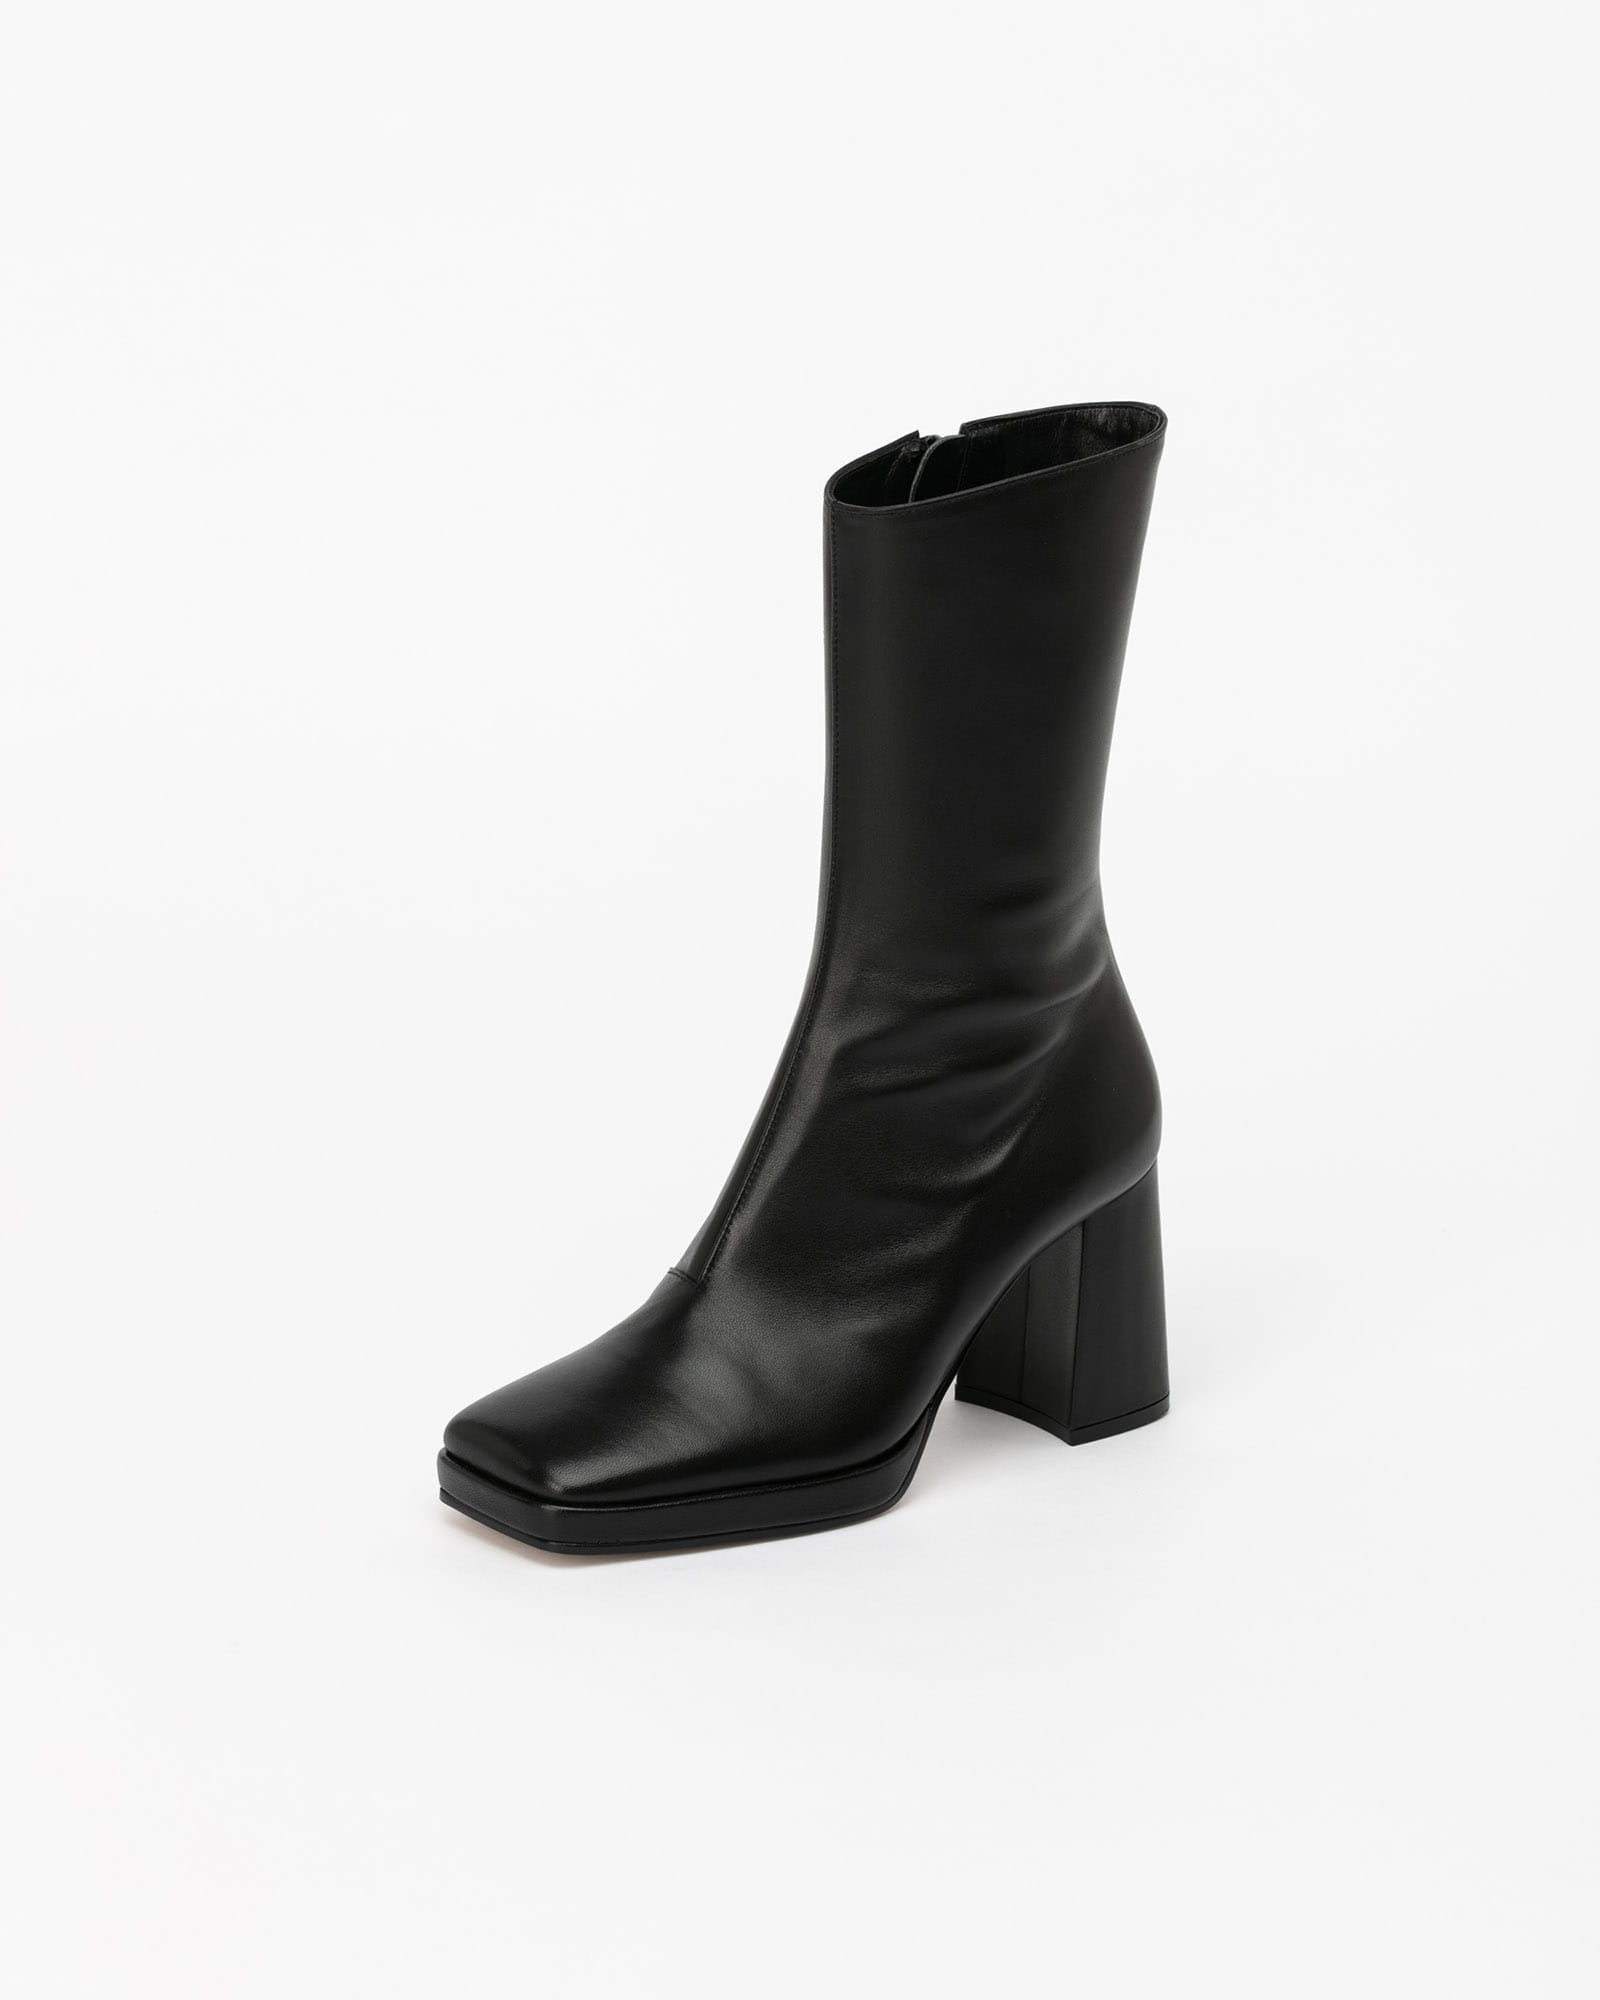 Catus Boots in Regular Black